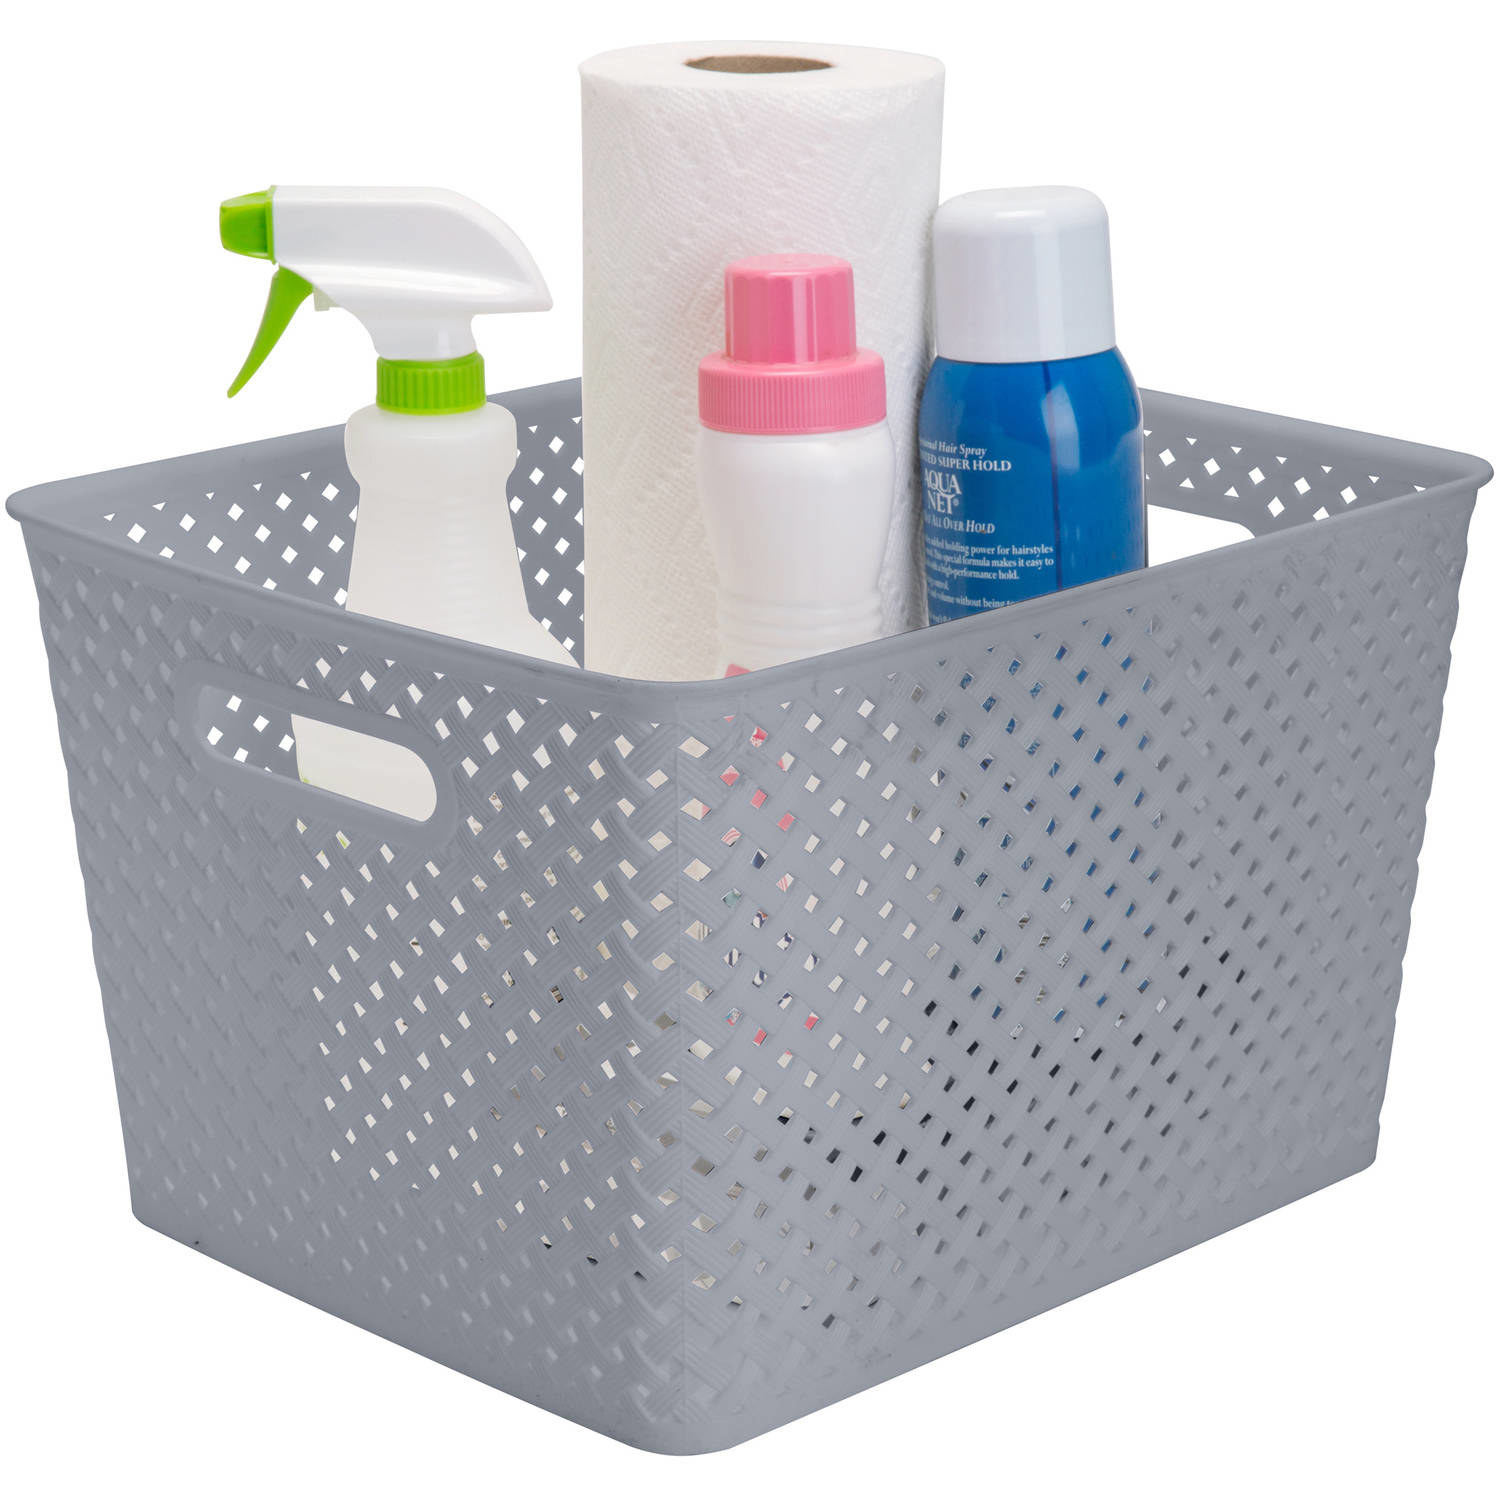 Gray wicker storage bin